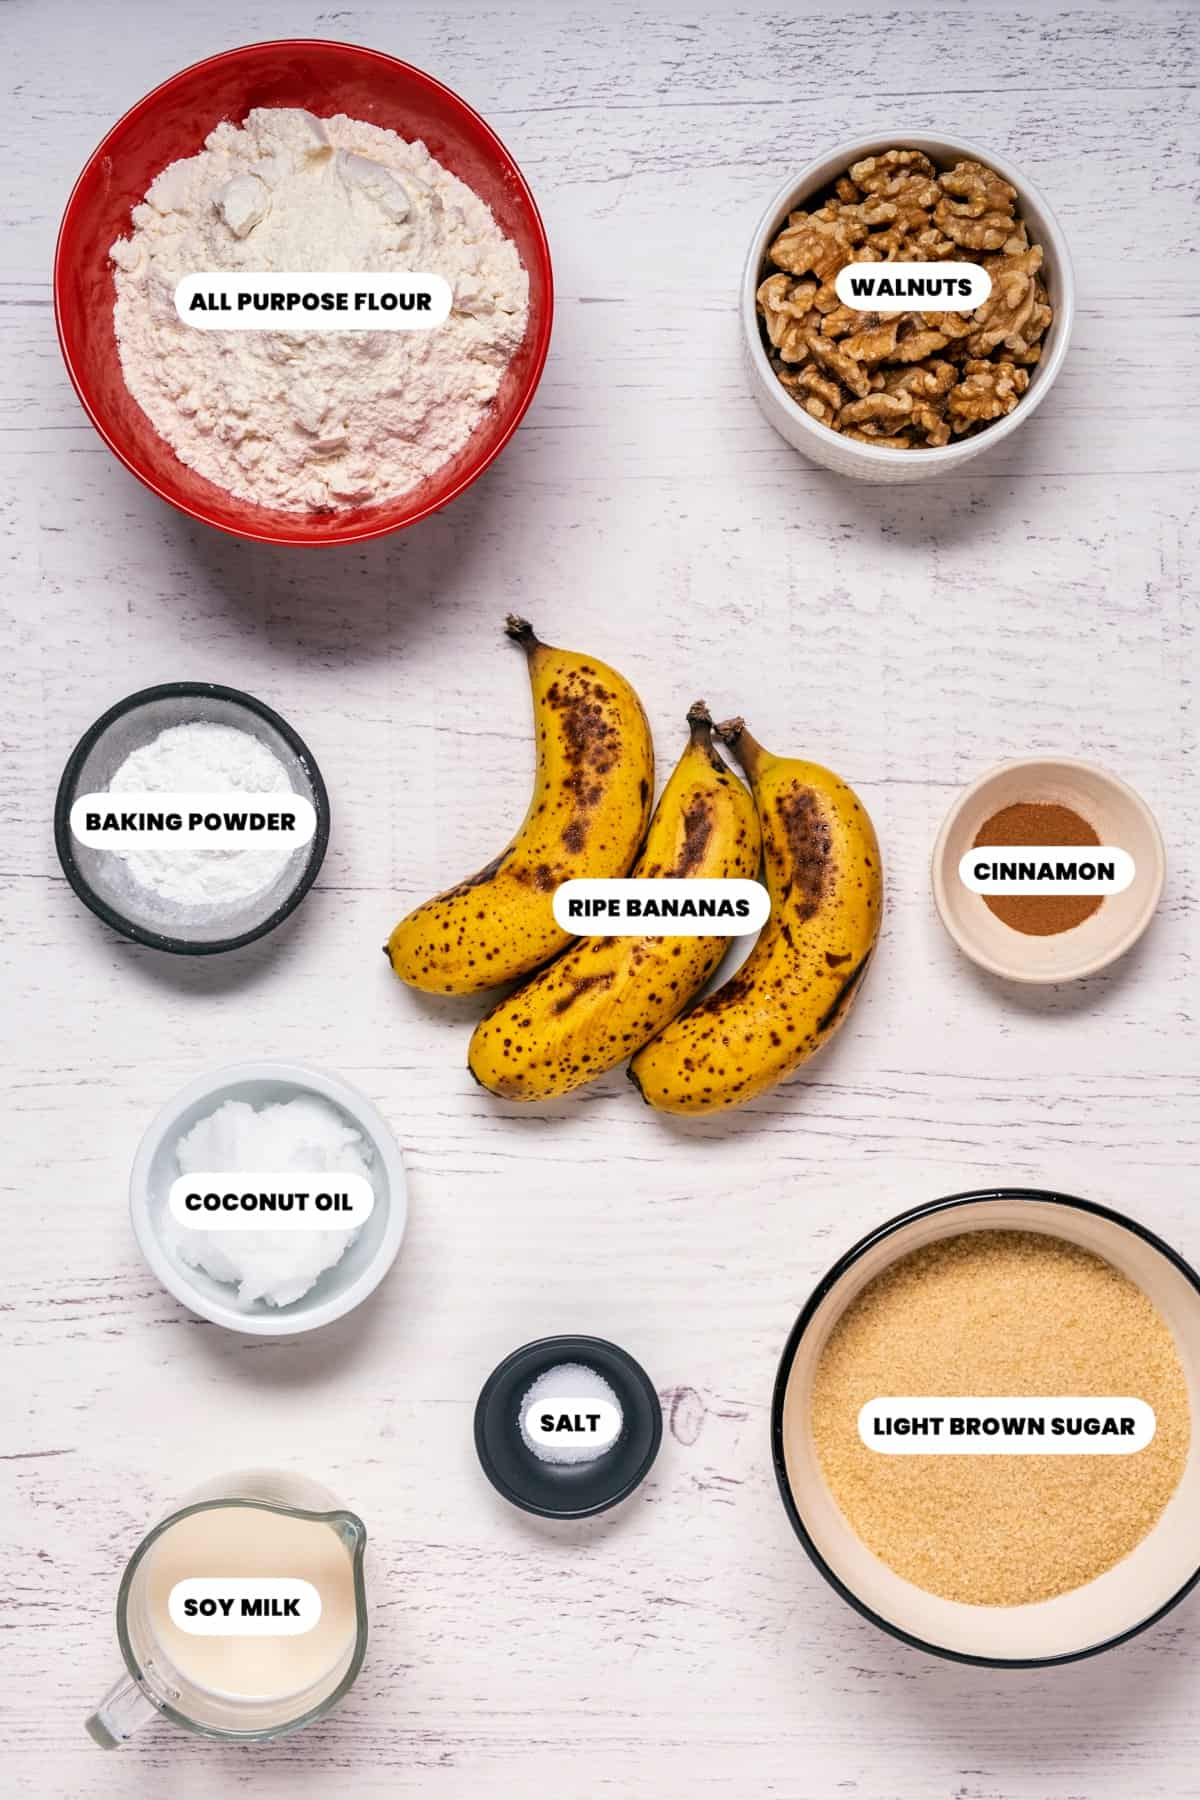 Photo of the ingredients needed to make vegan banana bread muffins.